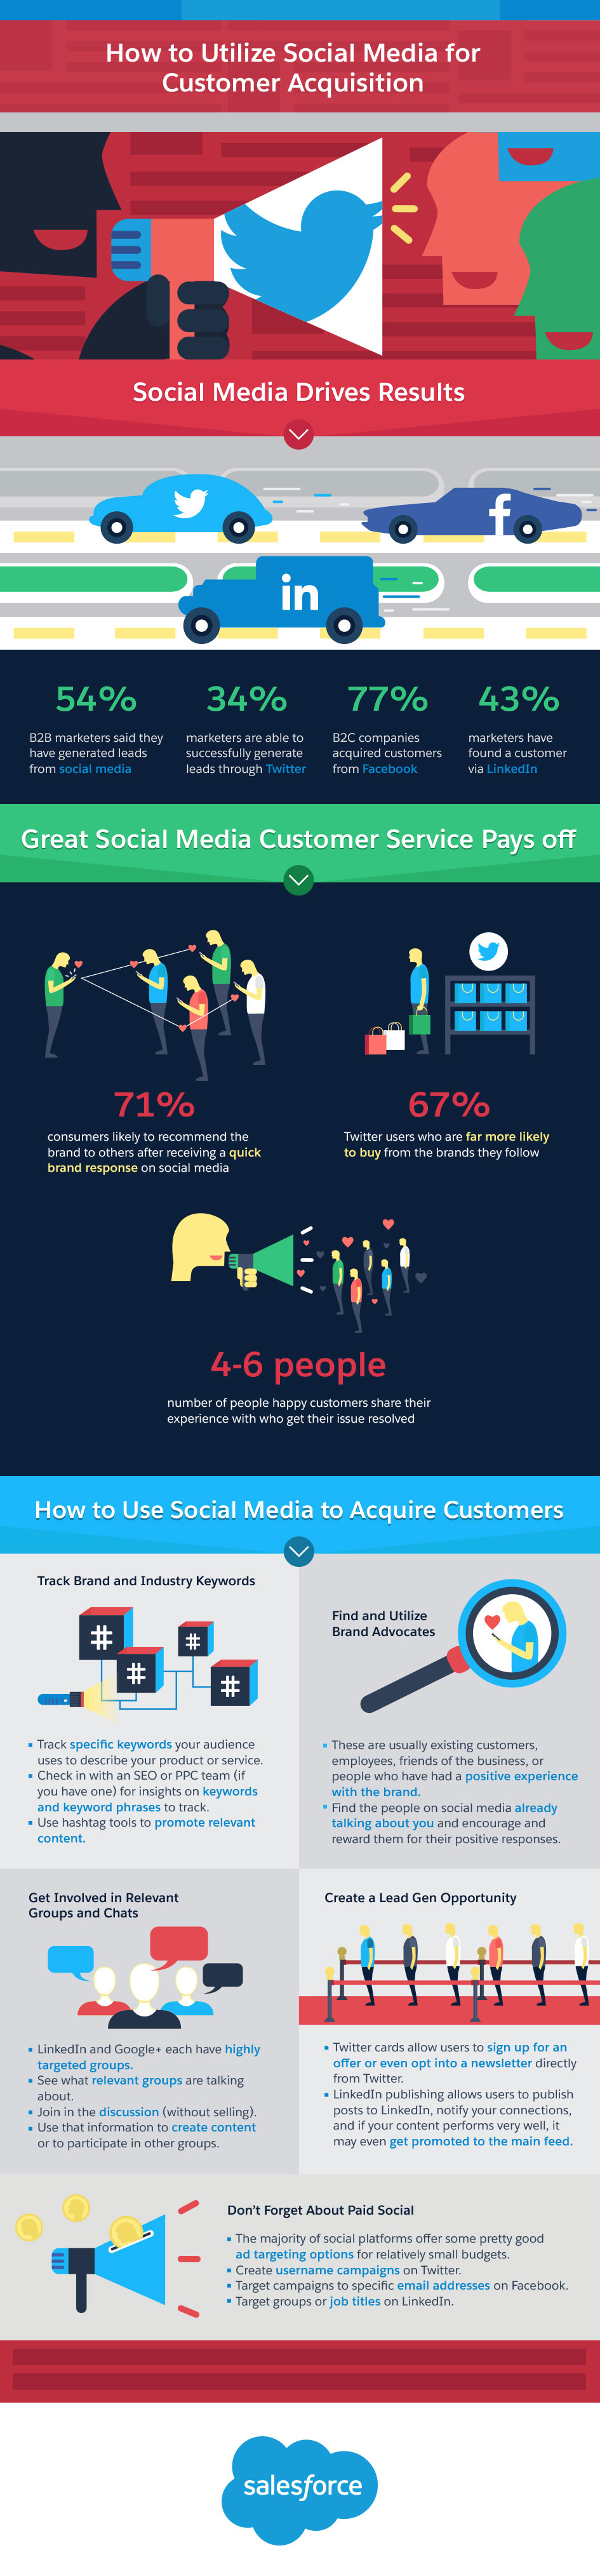 How to acquire customers with social media